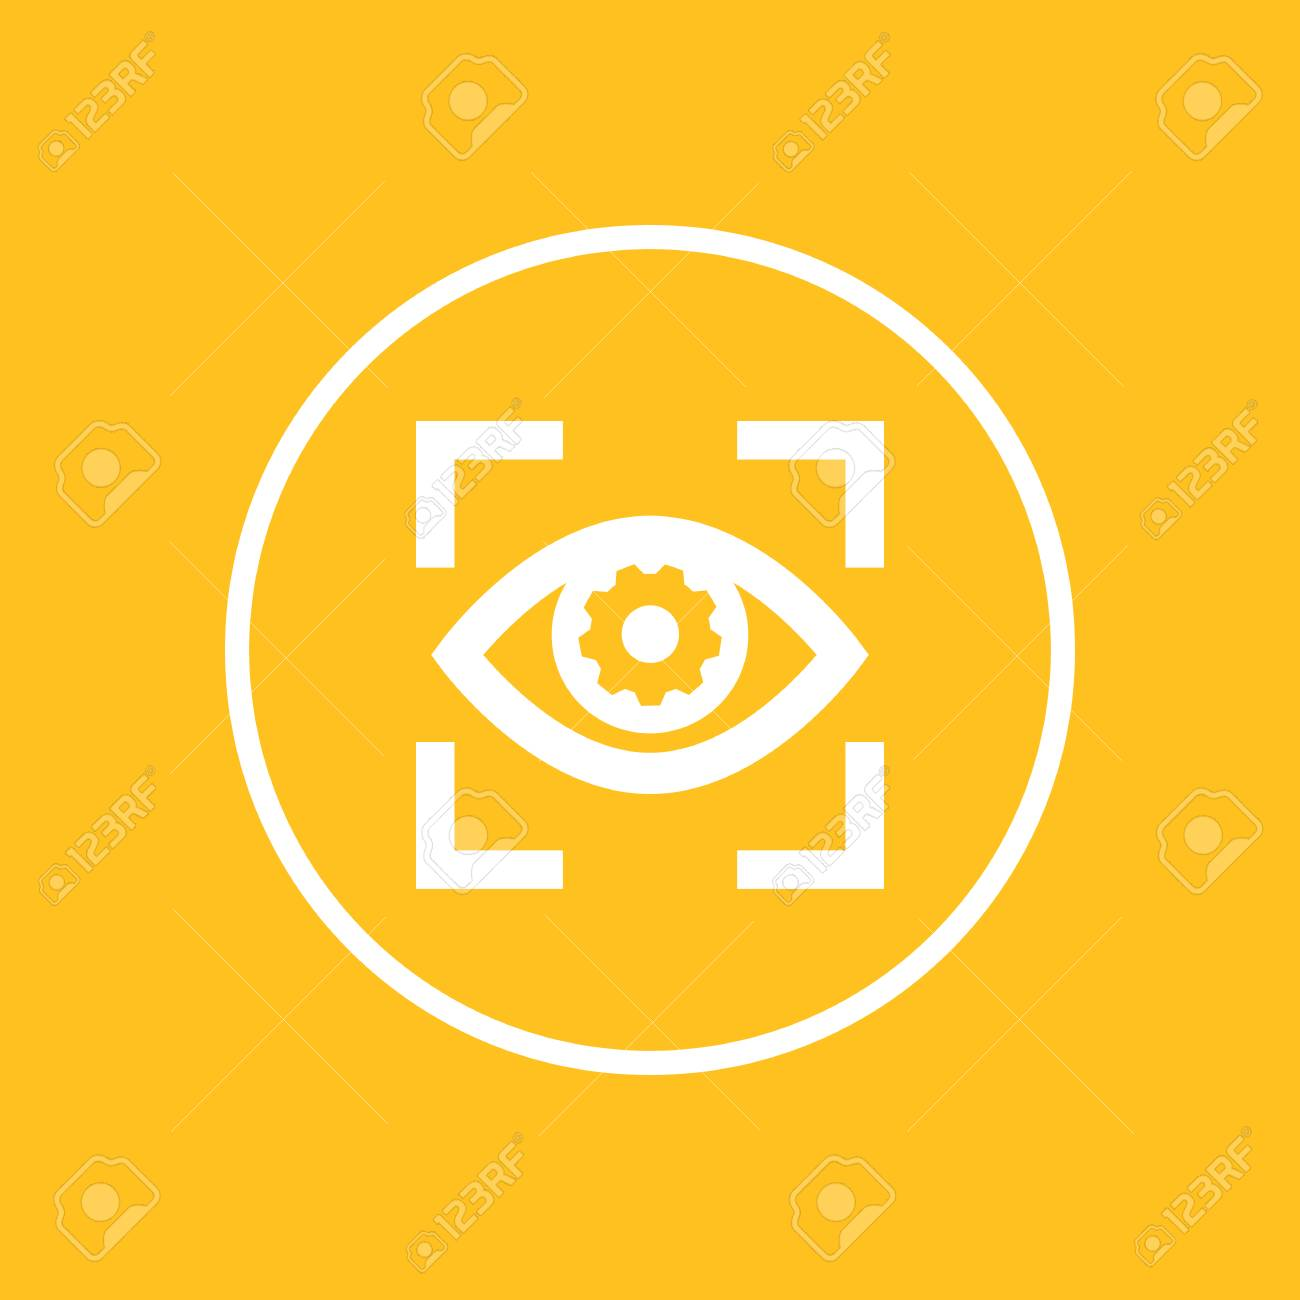 eye with gear icon in circle - 77975220